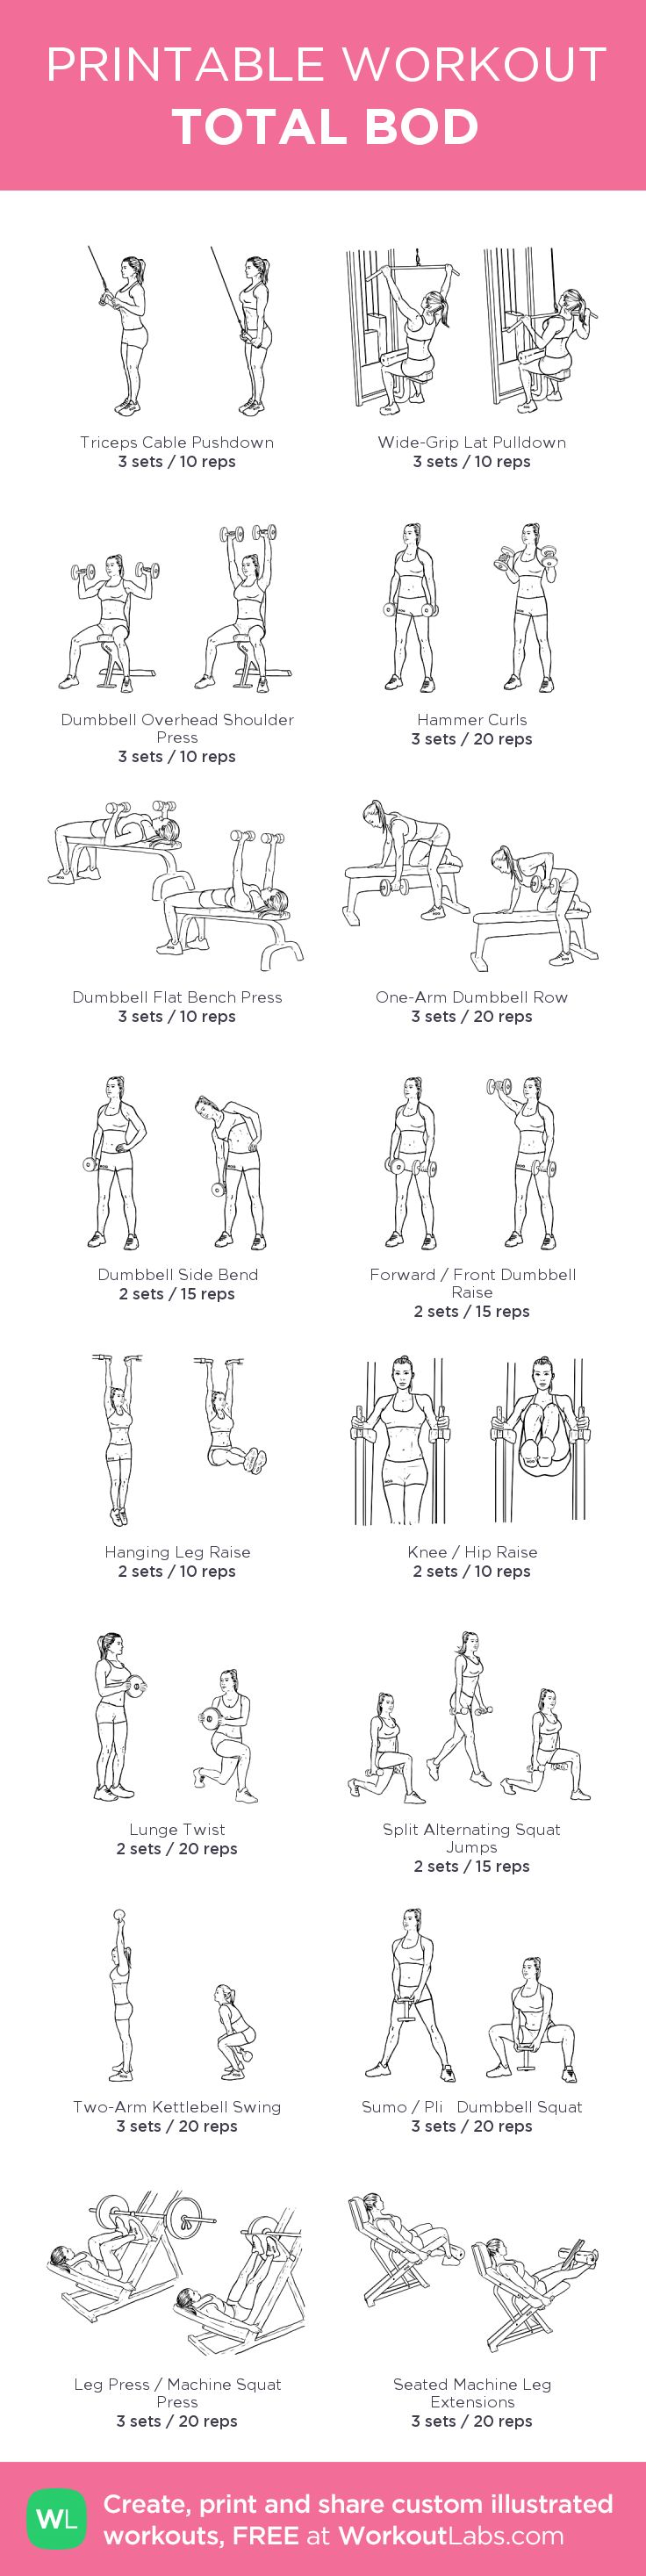 my gym routine